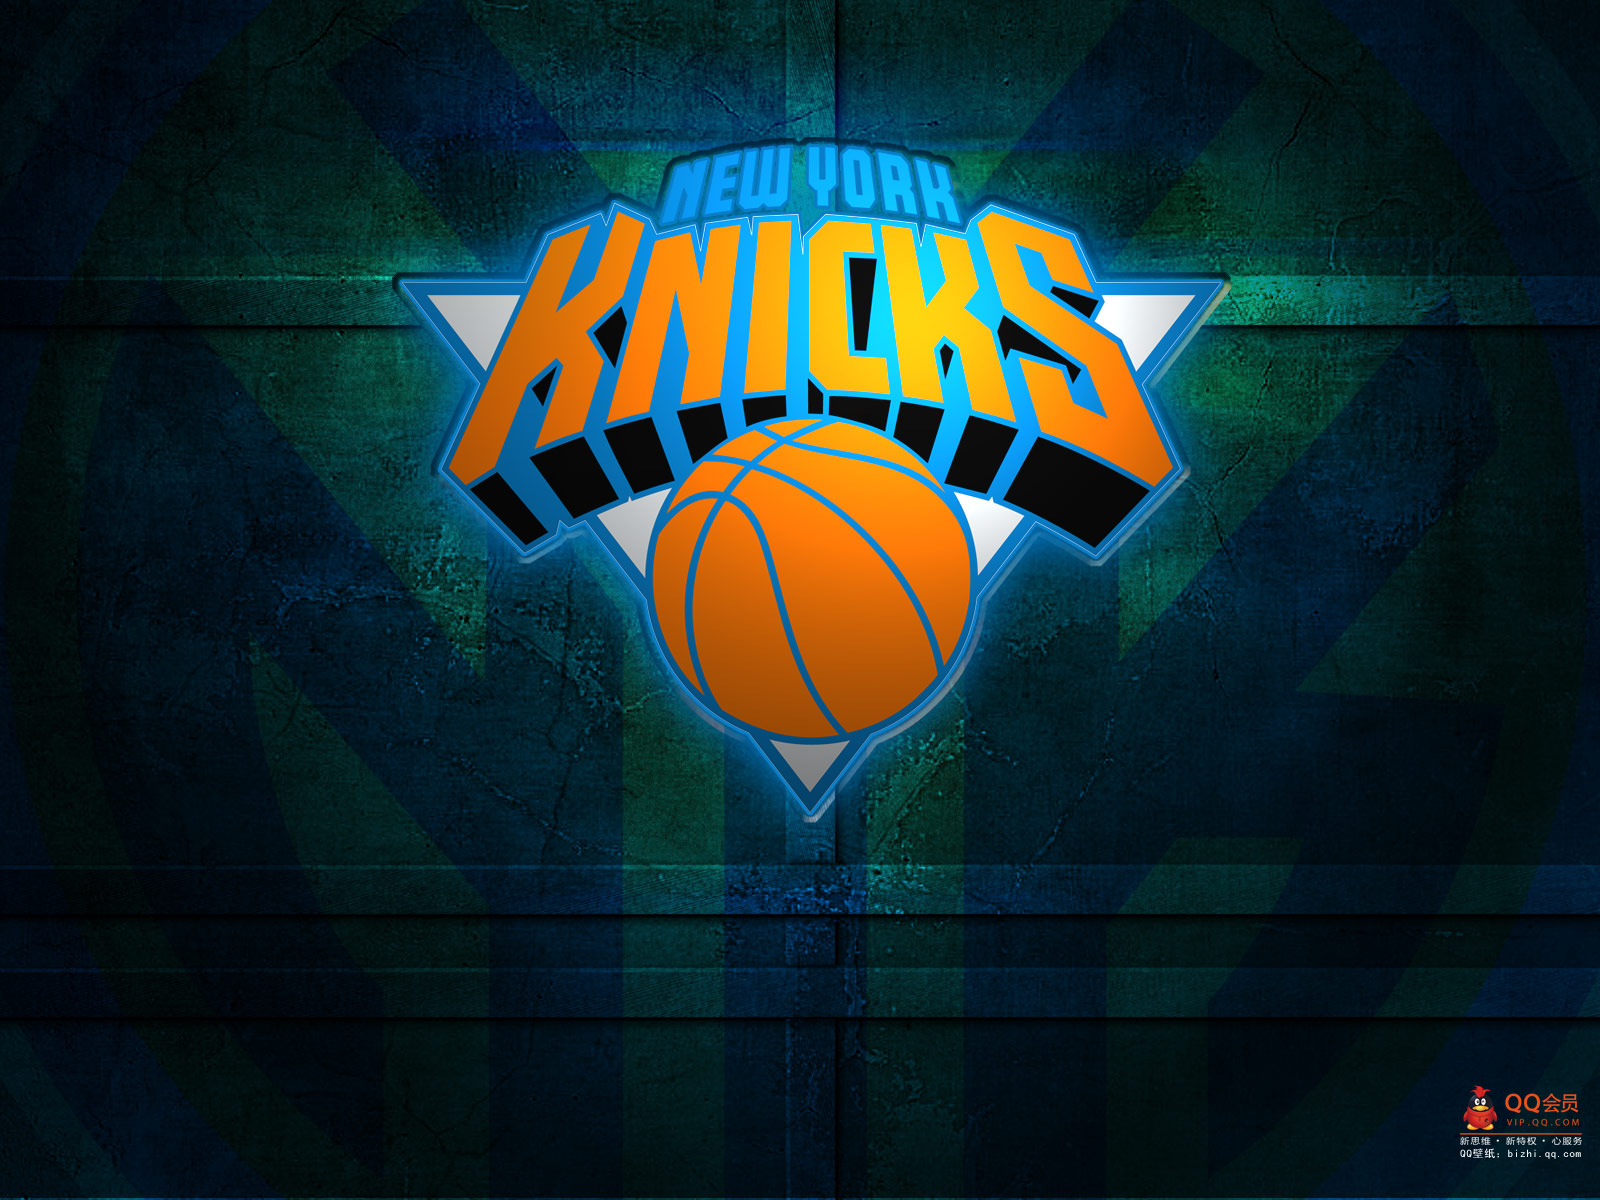 New York Knicks Wallpapers High Resolution and Quality Download